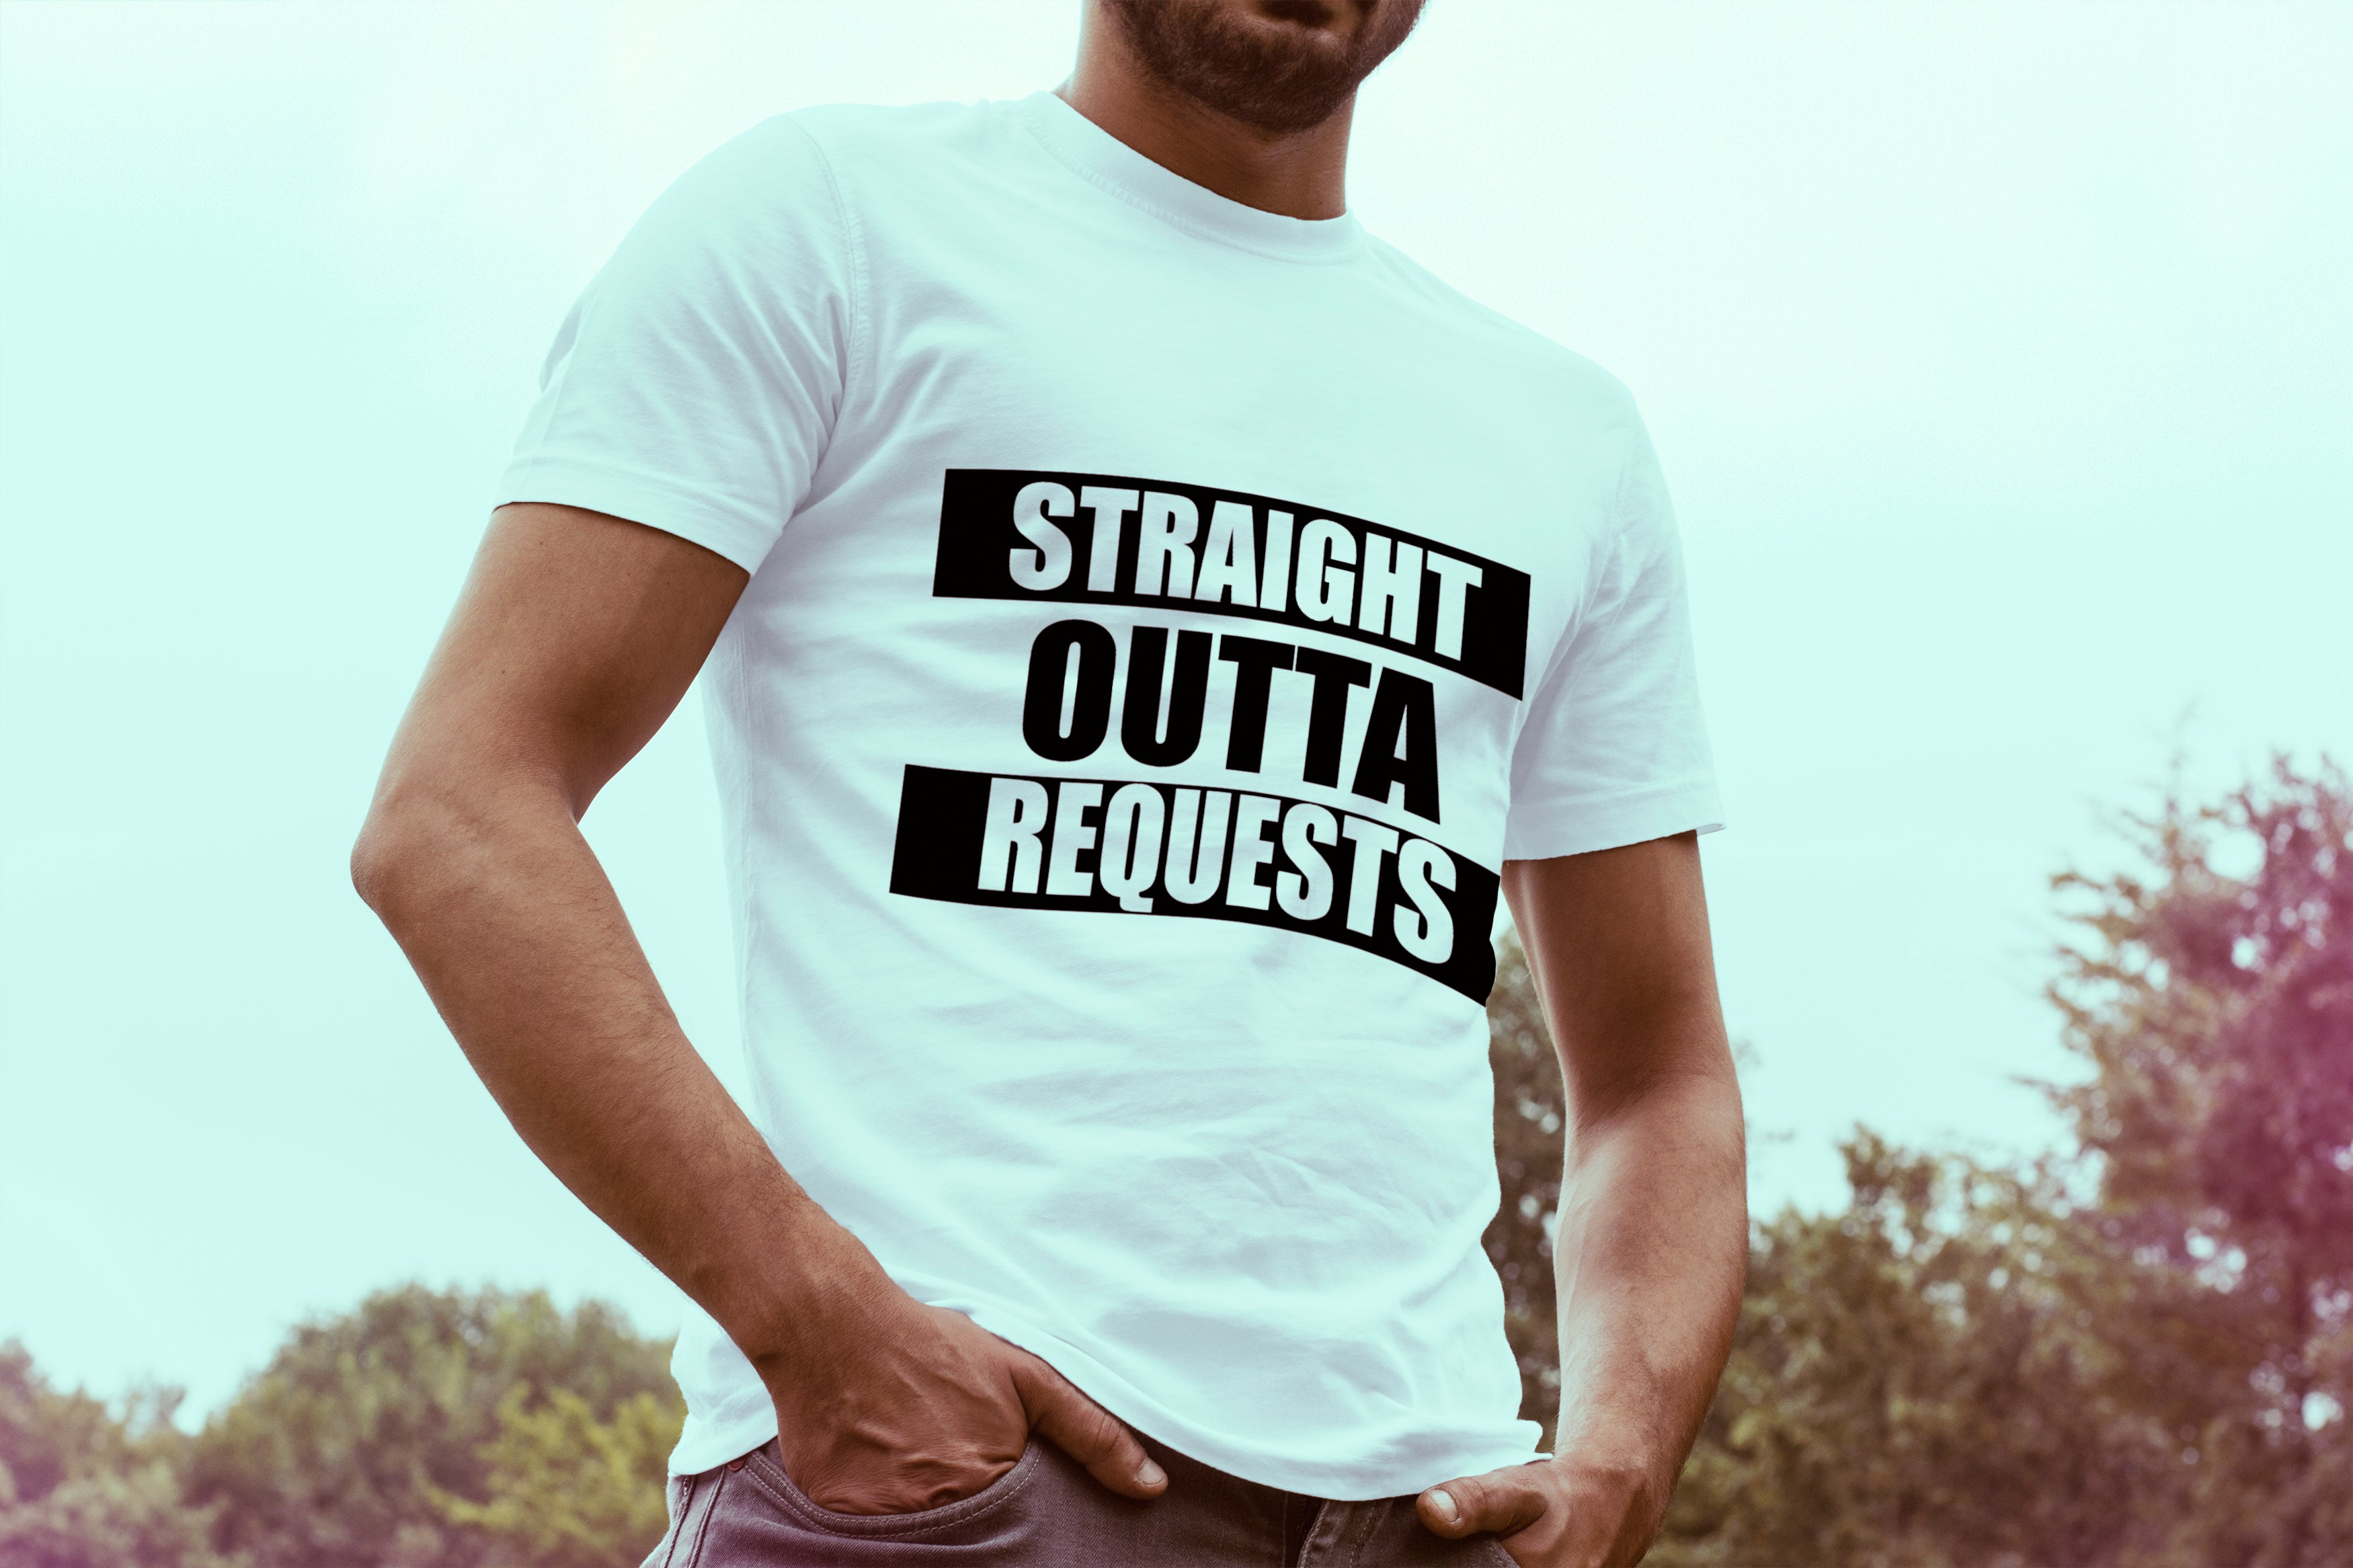 Straight Outta Requests Short Sleeve T-Shirt - GET FRESH MARKETPLACE